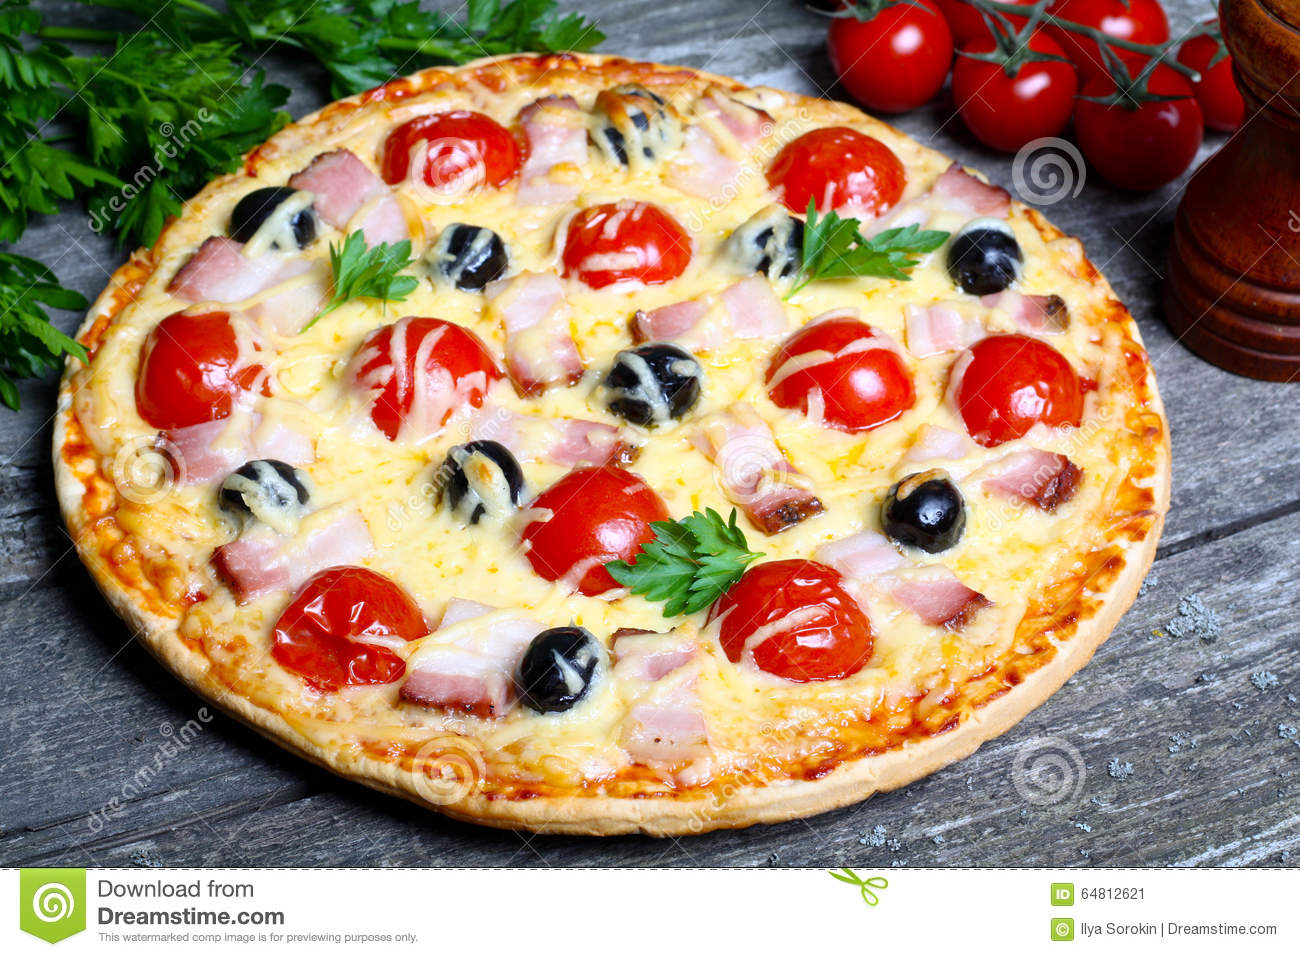 Pizza With Bacon, Olives And Tomato Stock Photo - Image: 64812621